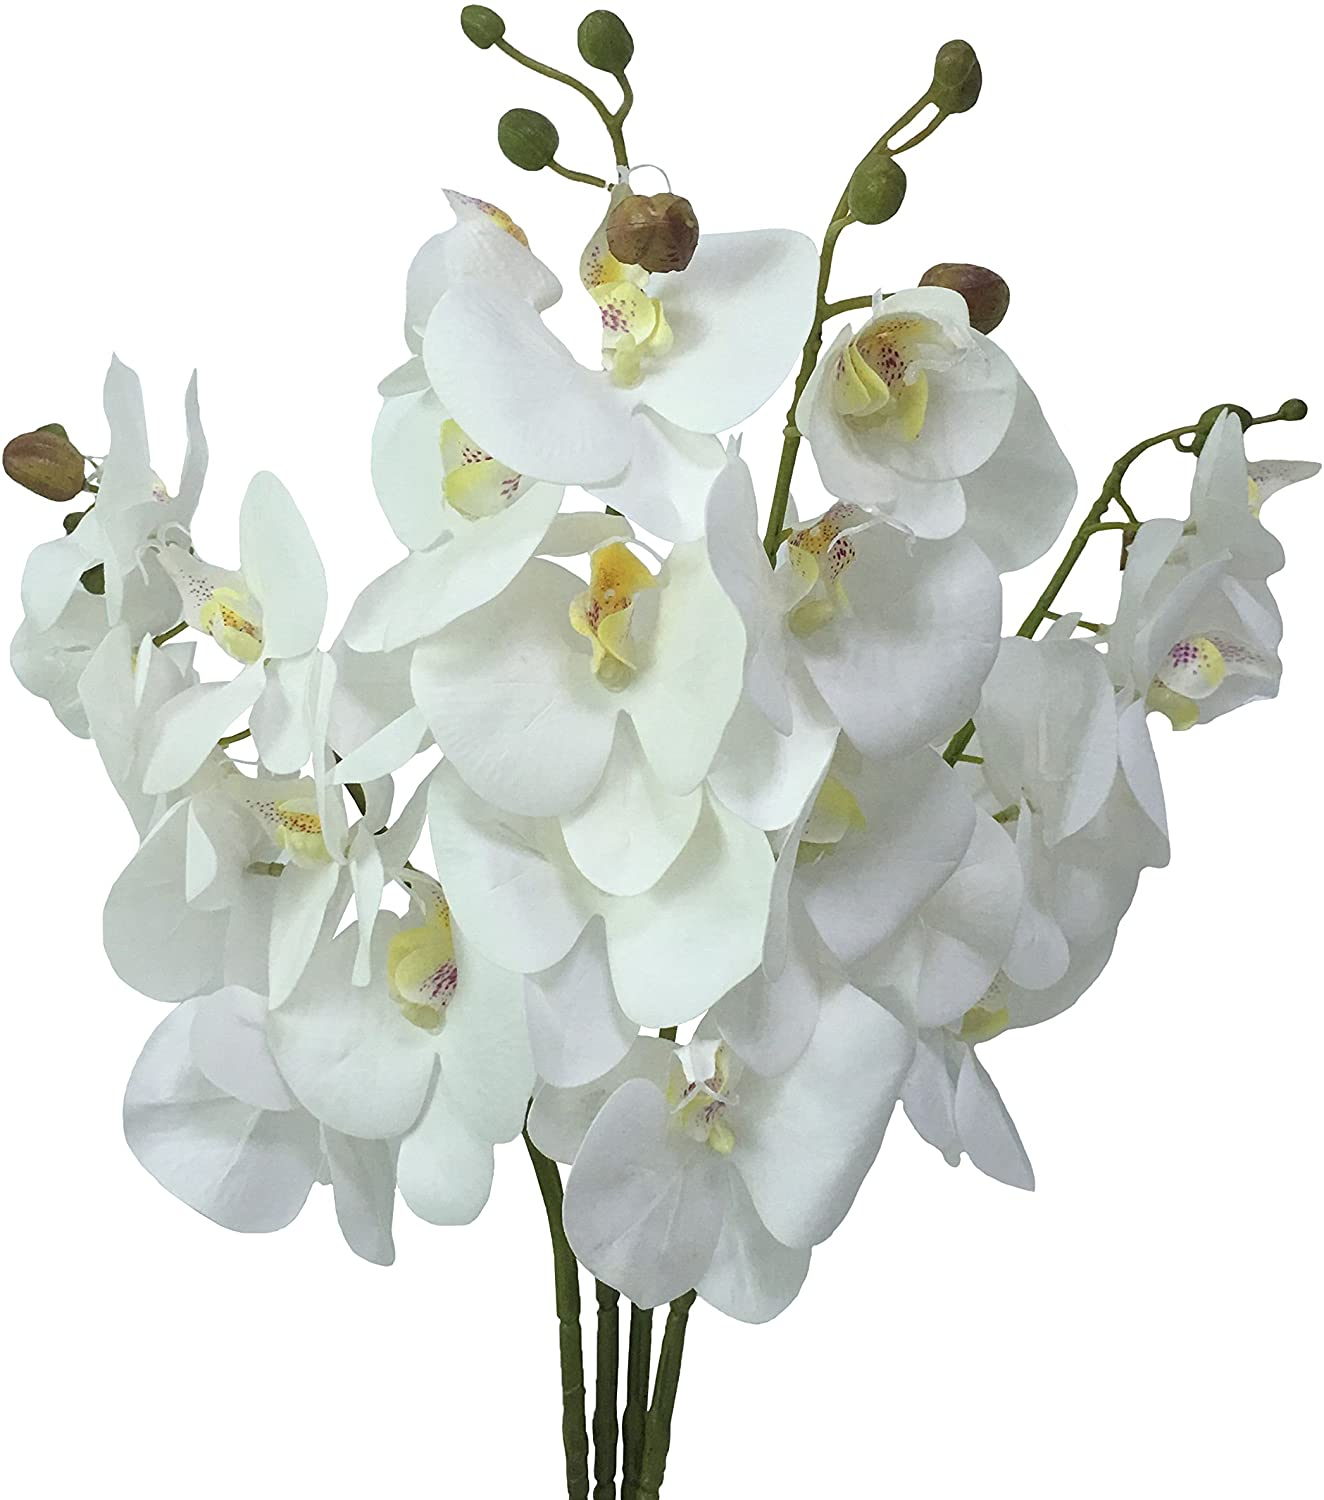 JAROWN White Orchid Artificial Flowers 4pcs 30 Inches